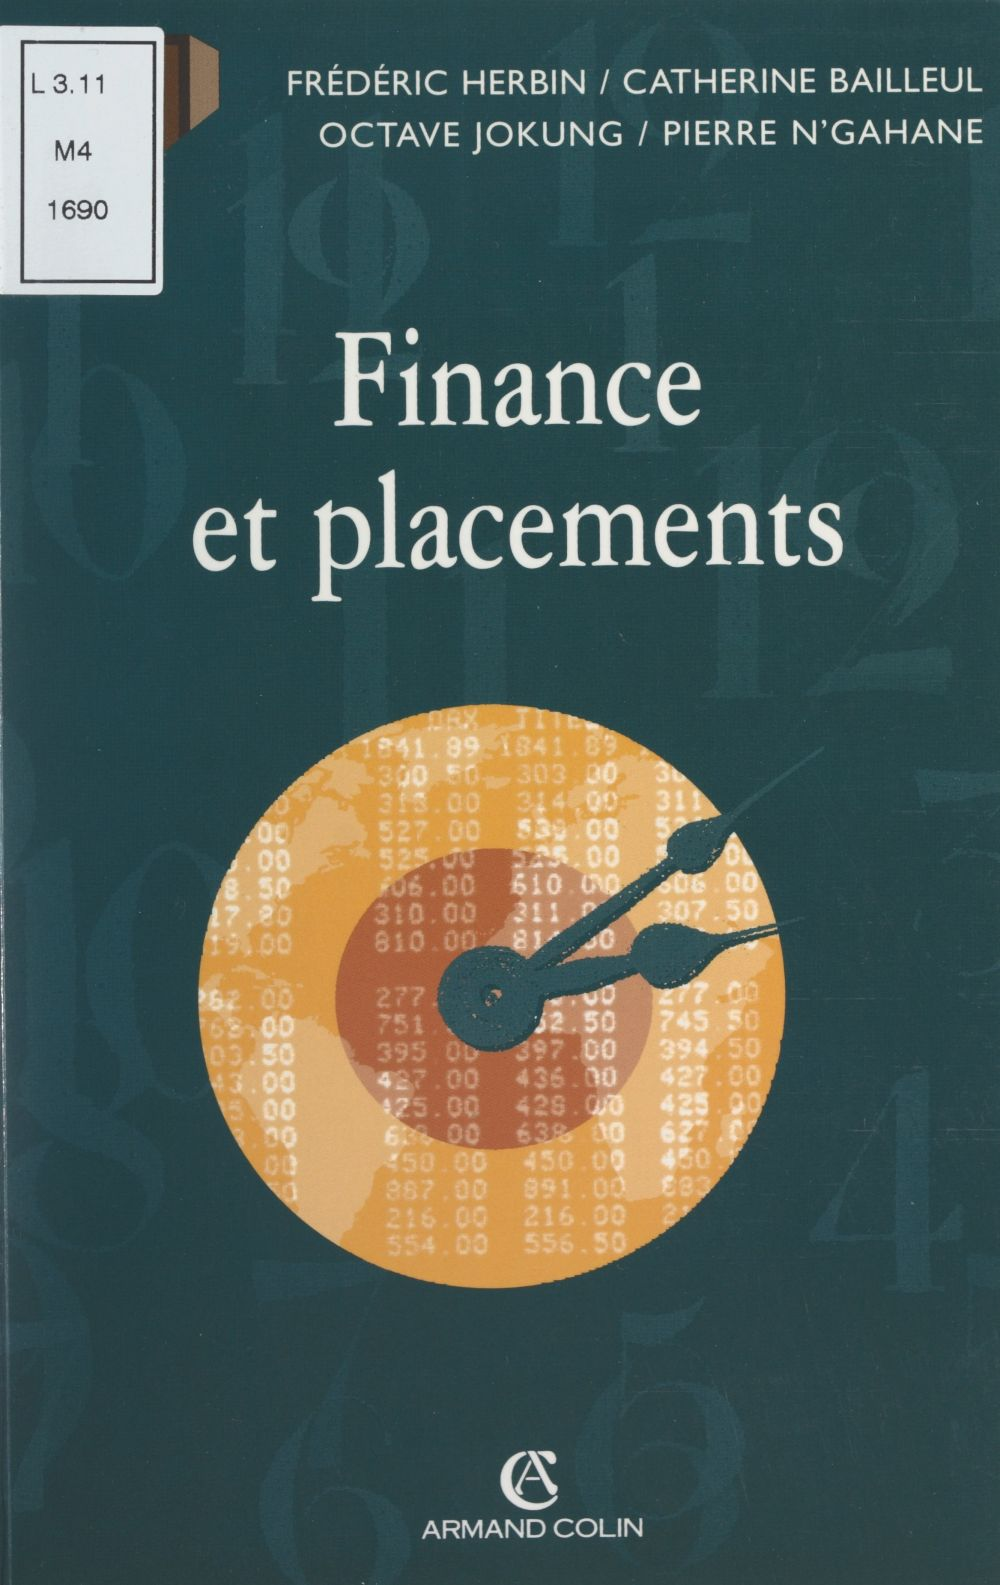 Finance et placements